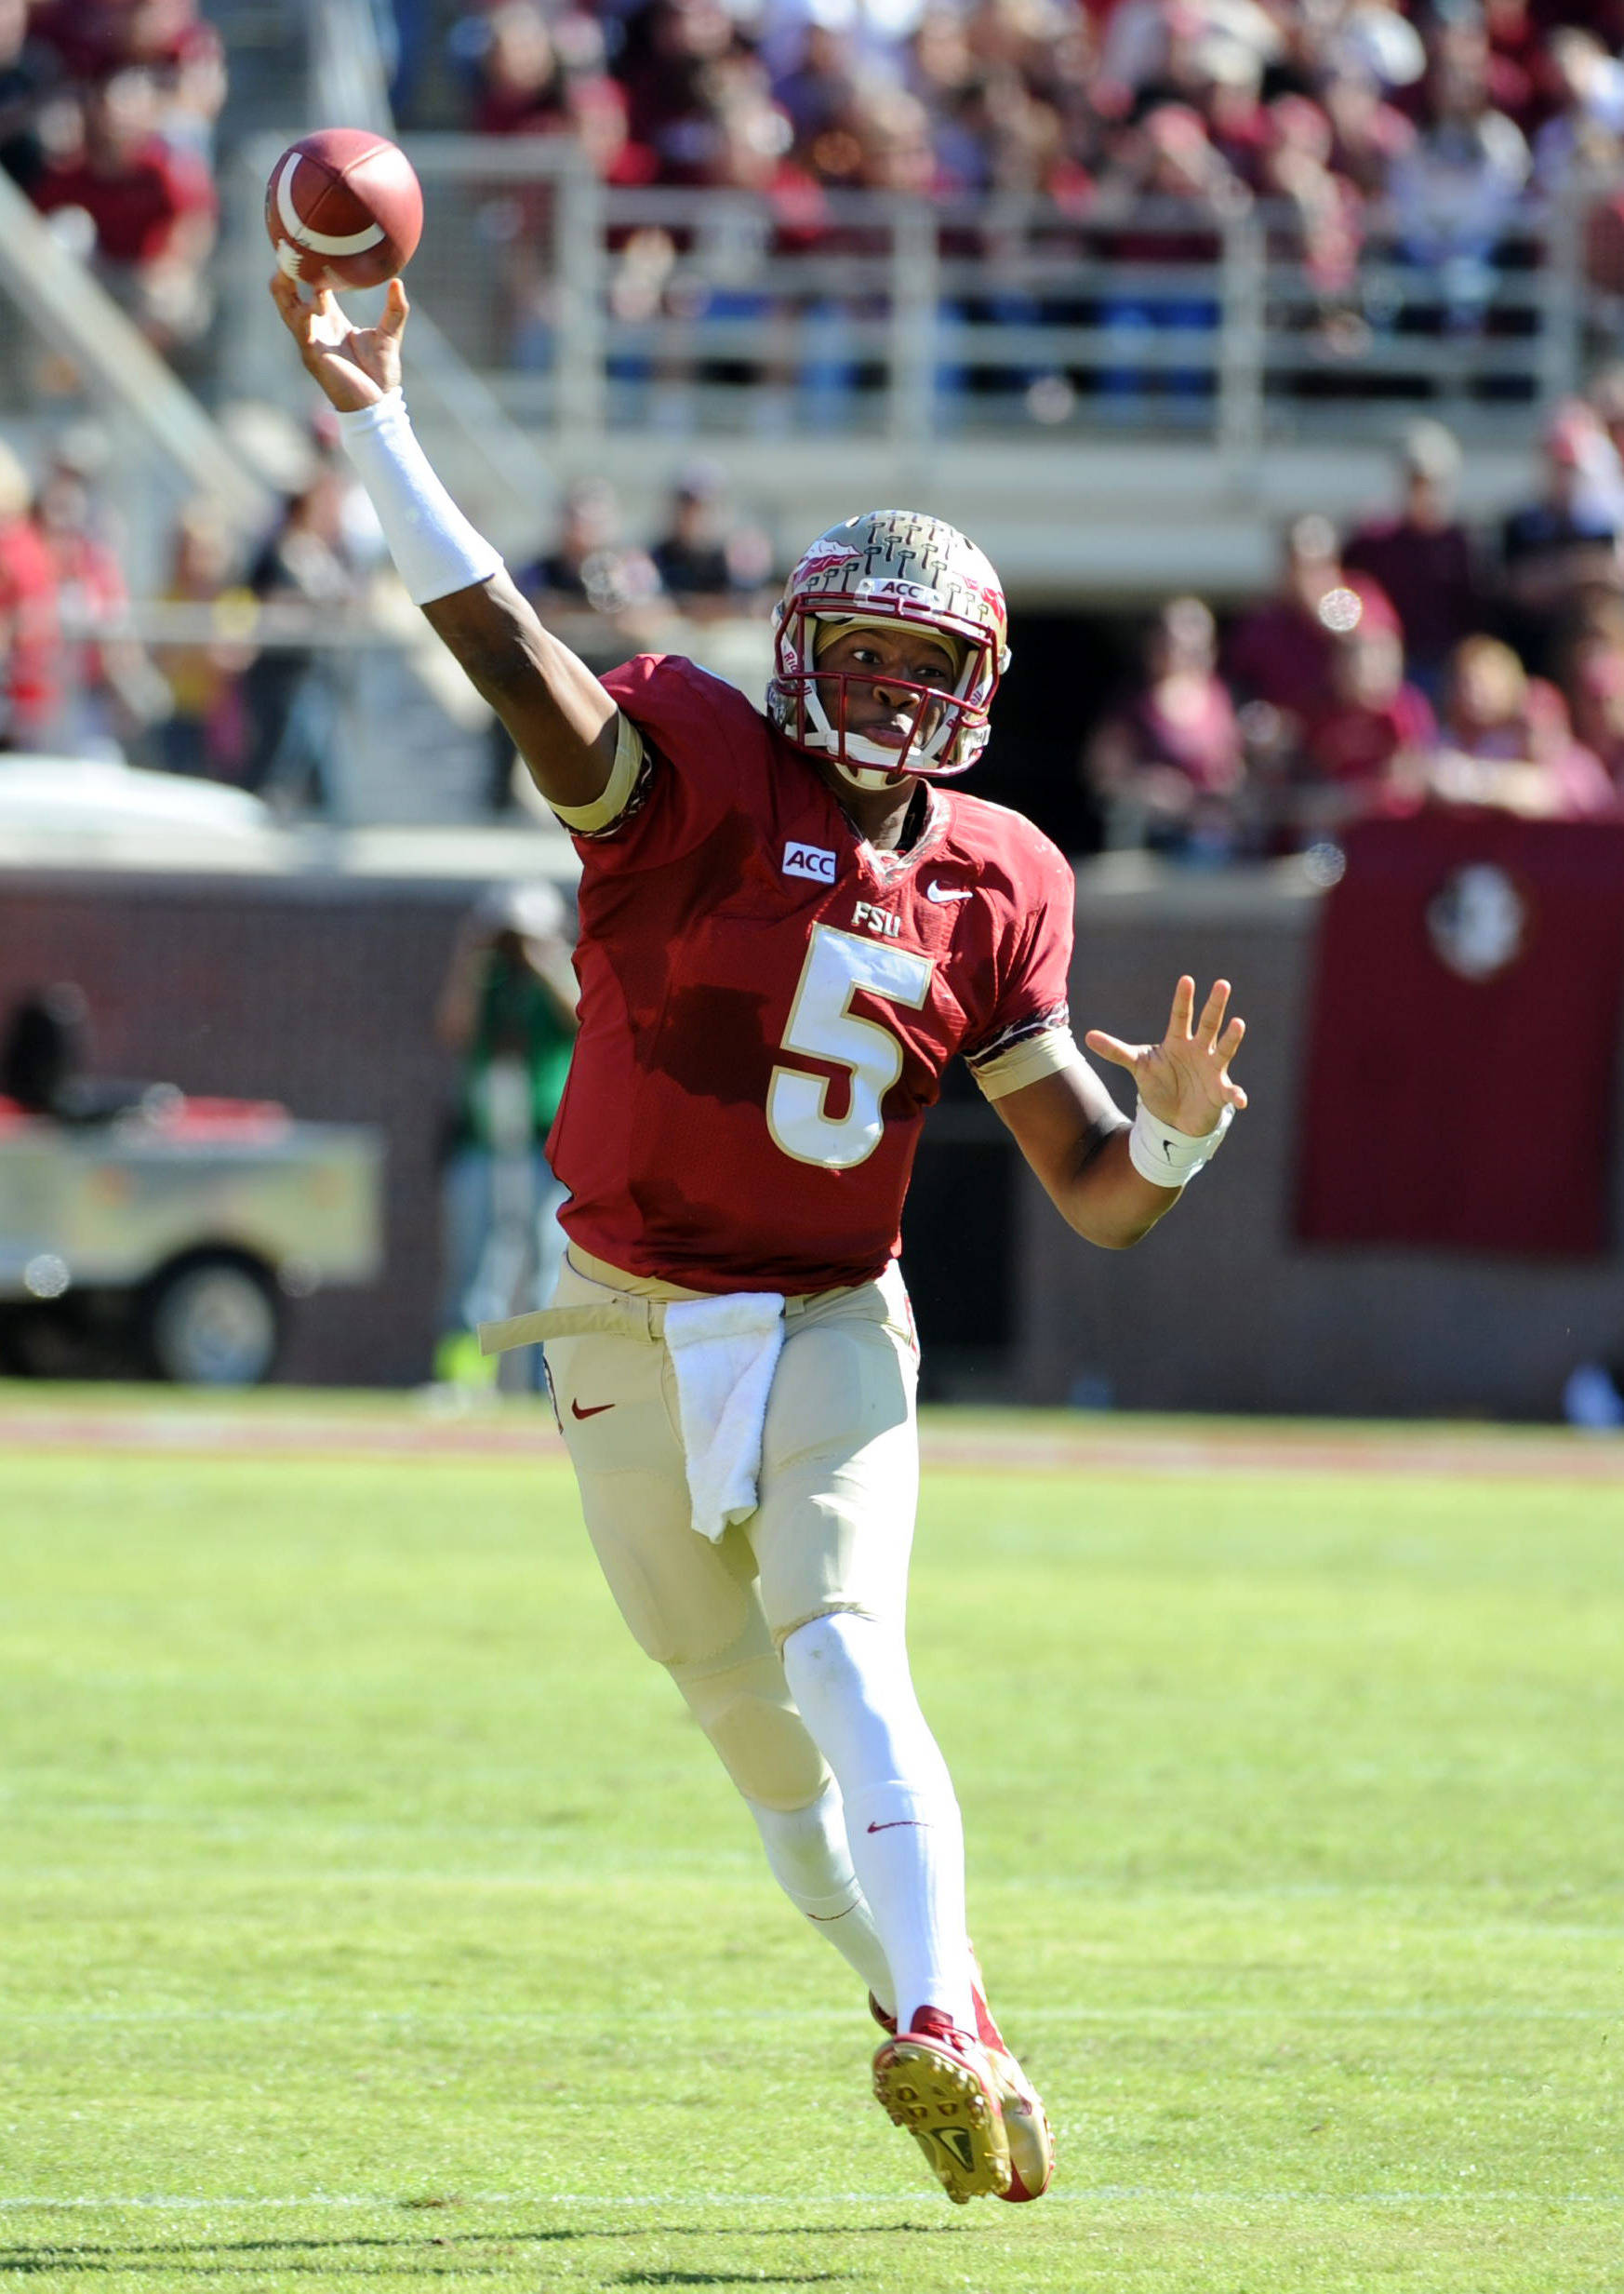 Jameis Winston (5) throws the ball during the first quarter. Mandatory Credit: Melina Vastola-USA TODAY Sports